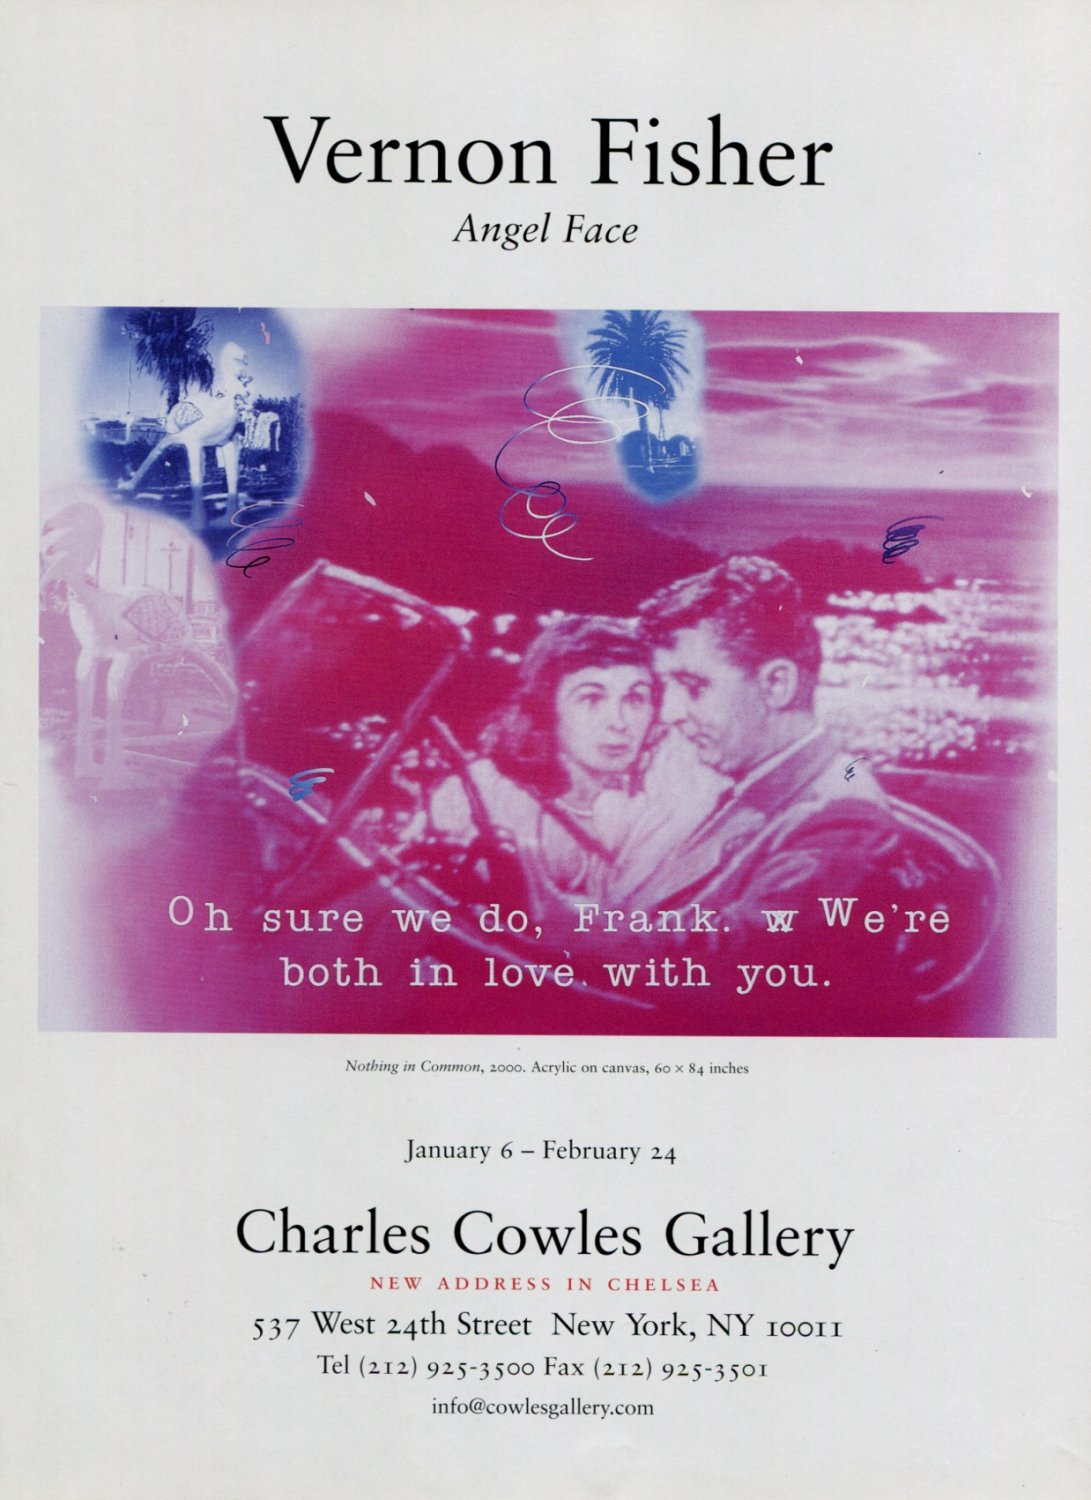 Vernon Fisher Angel Face 2001 Art Exhibition Ad Advert Nothing in Common